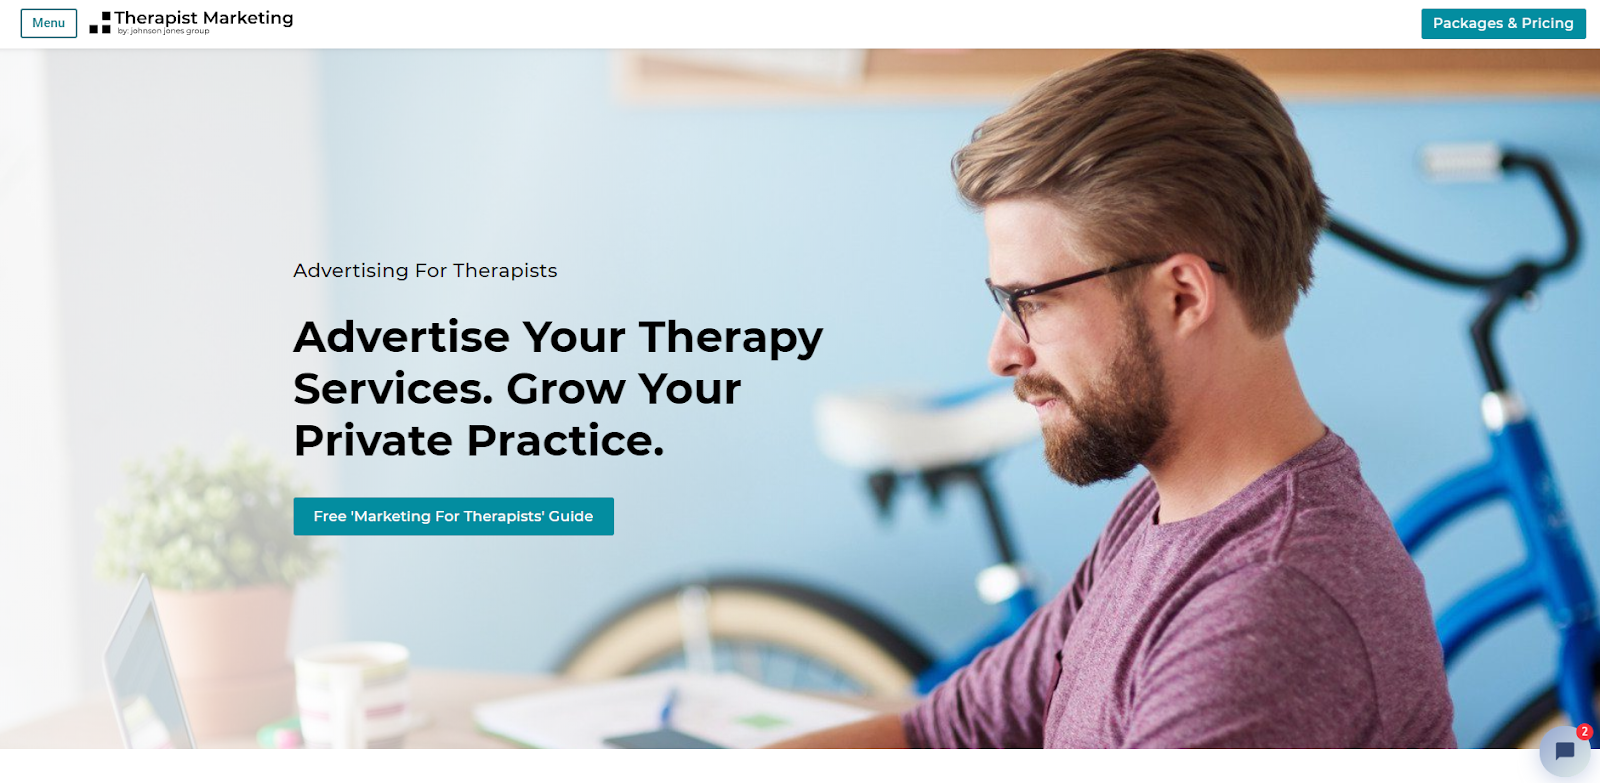 Therapy Ads: 14 Mind-Blowing Ways to Advertise Your Private Practice [Update 2020] 8